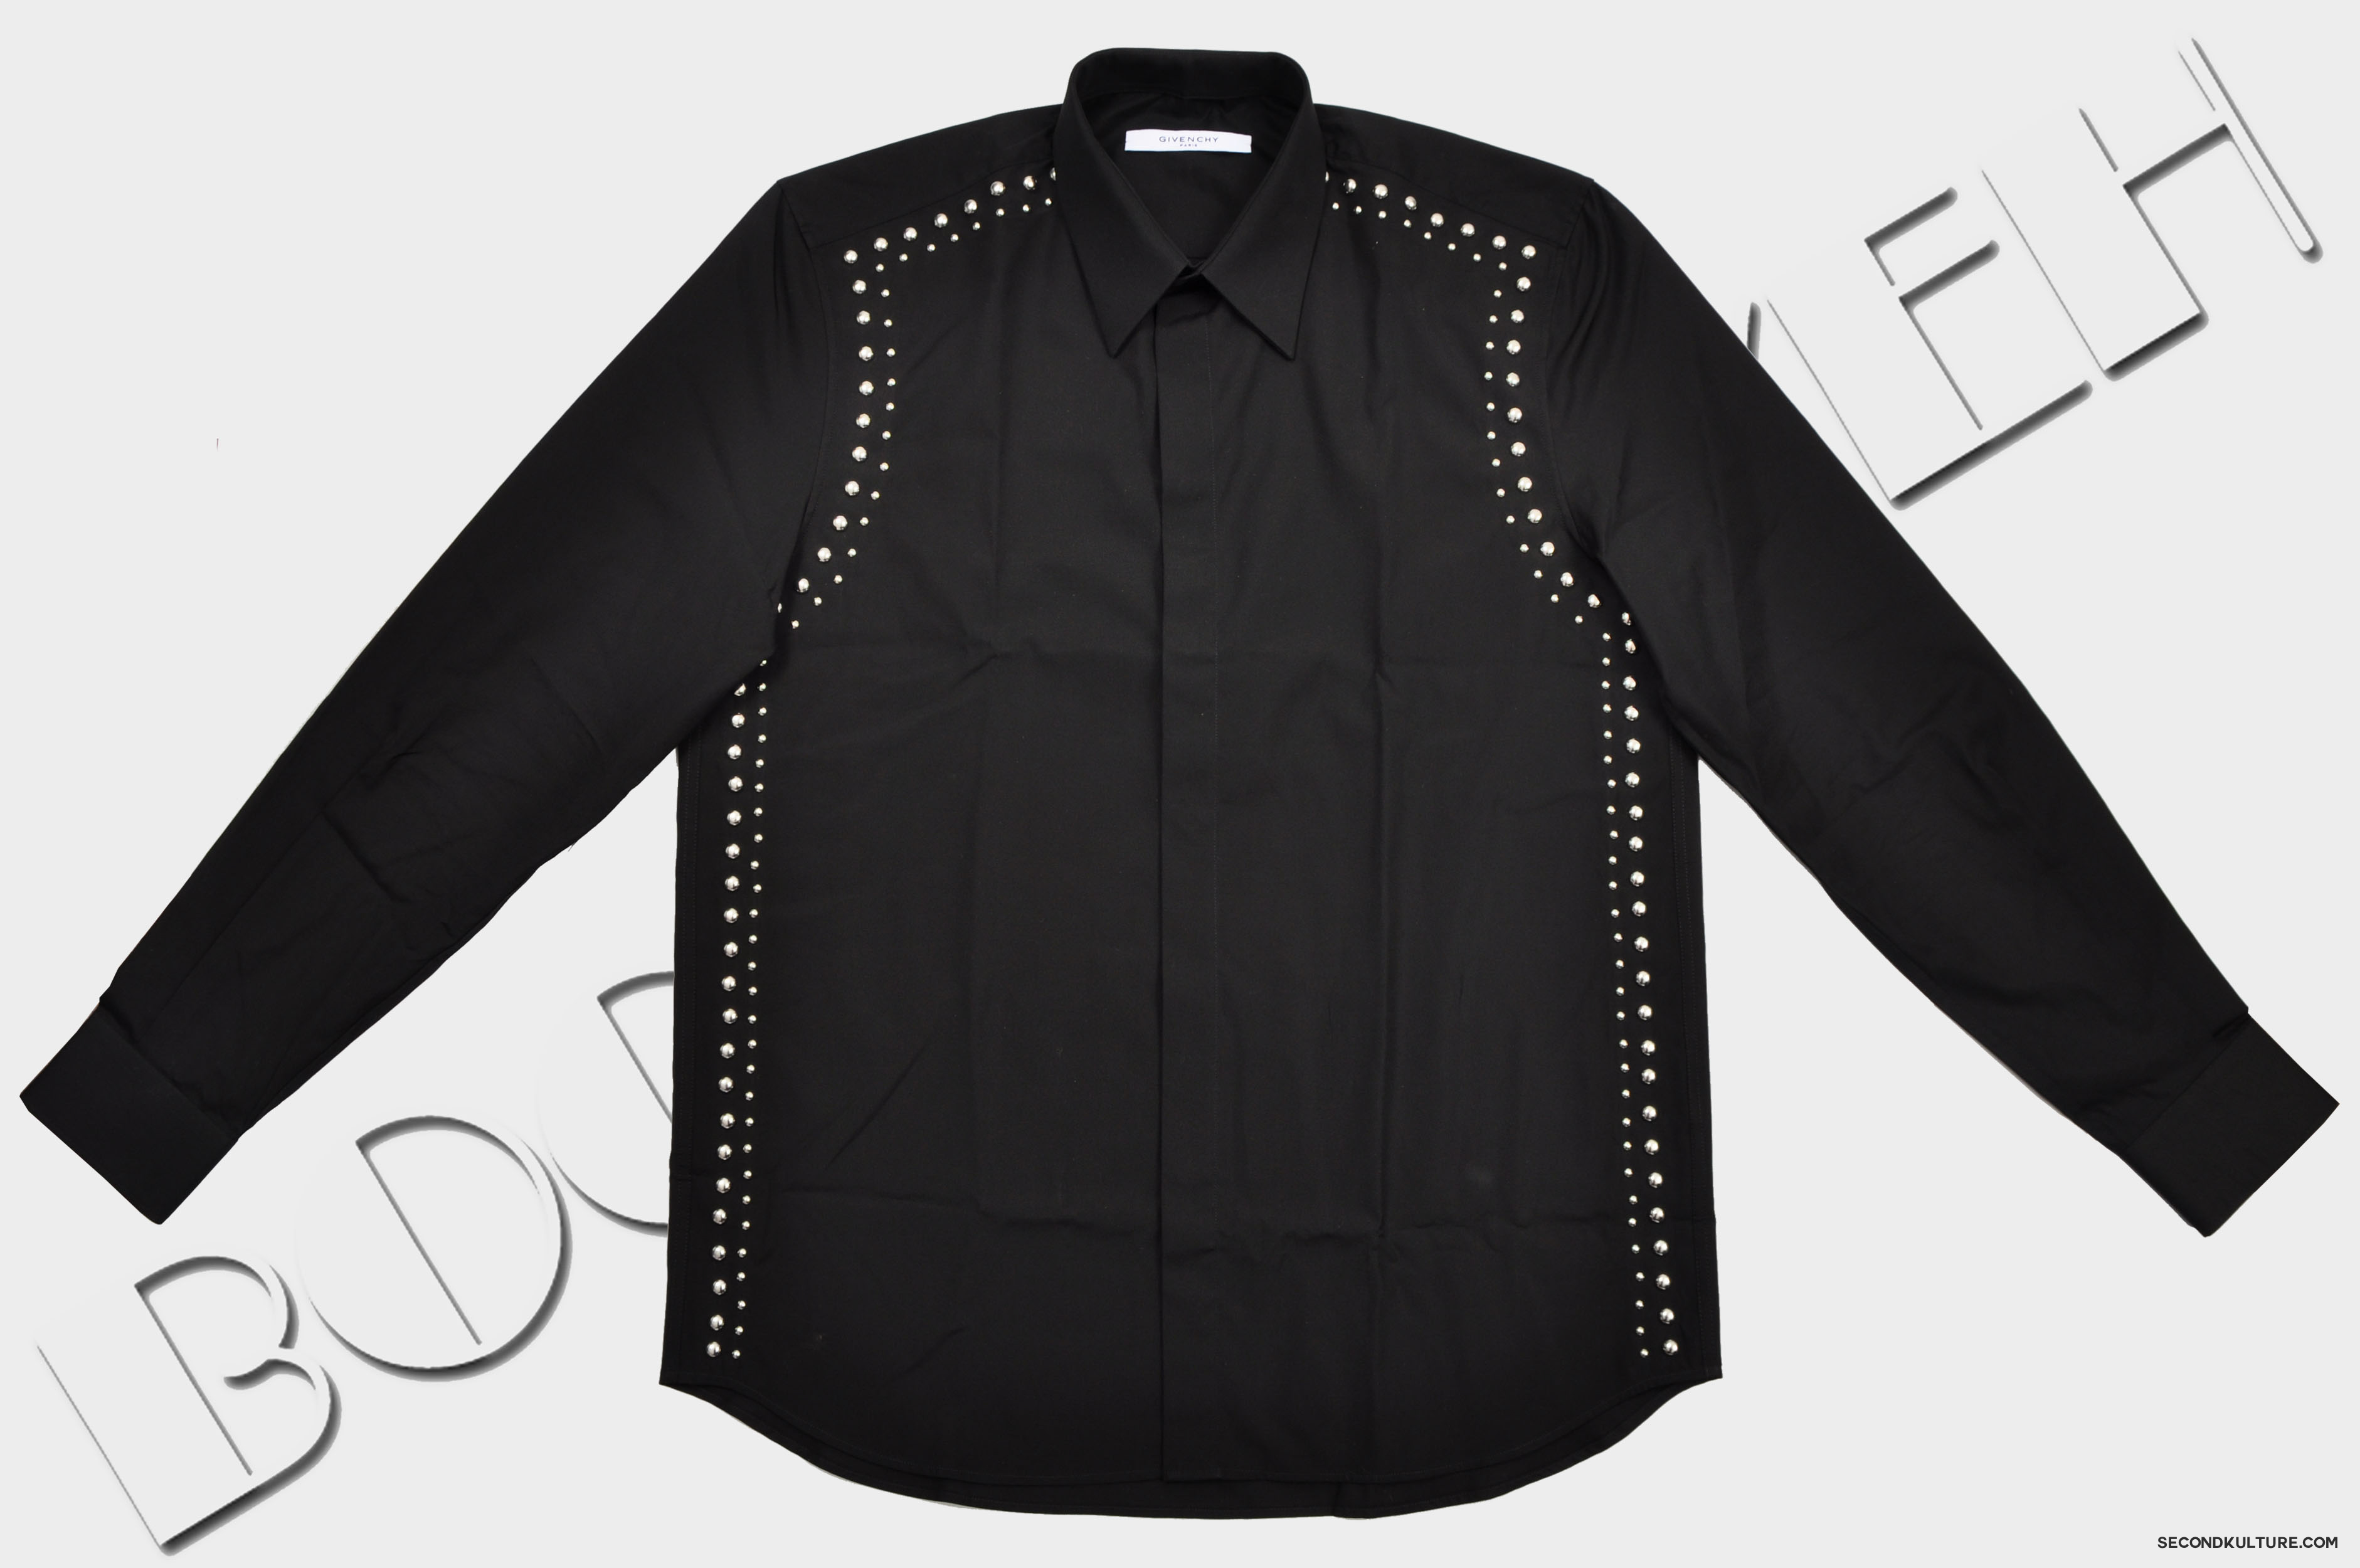 Givenchy-Black-Metal-Studded-Shirt-Pre-Fall-2015-15F6202300